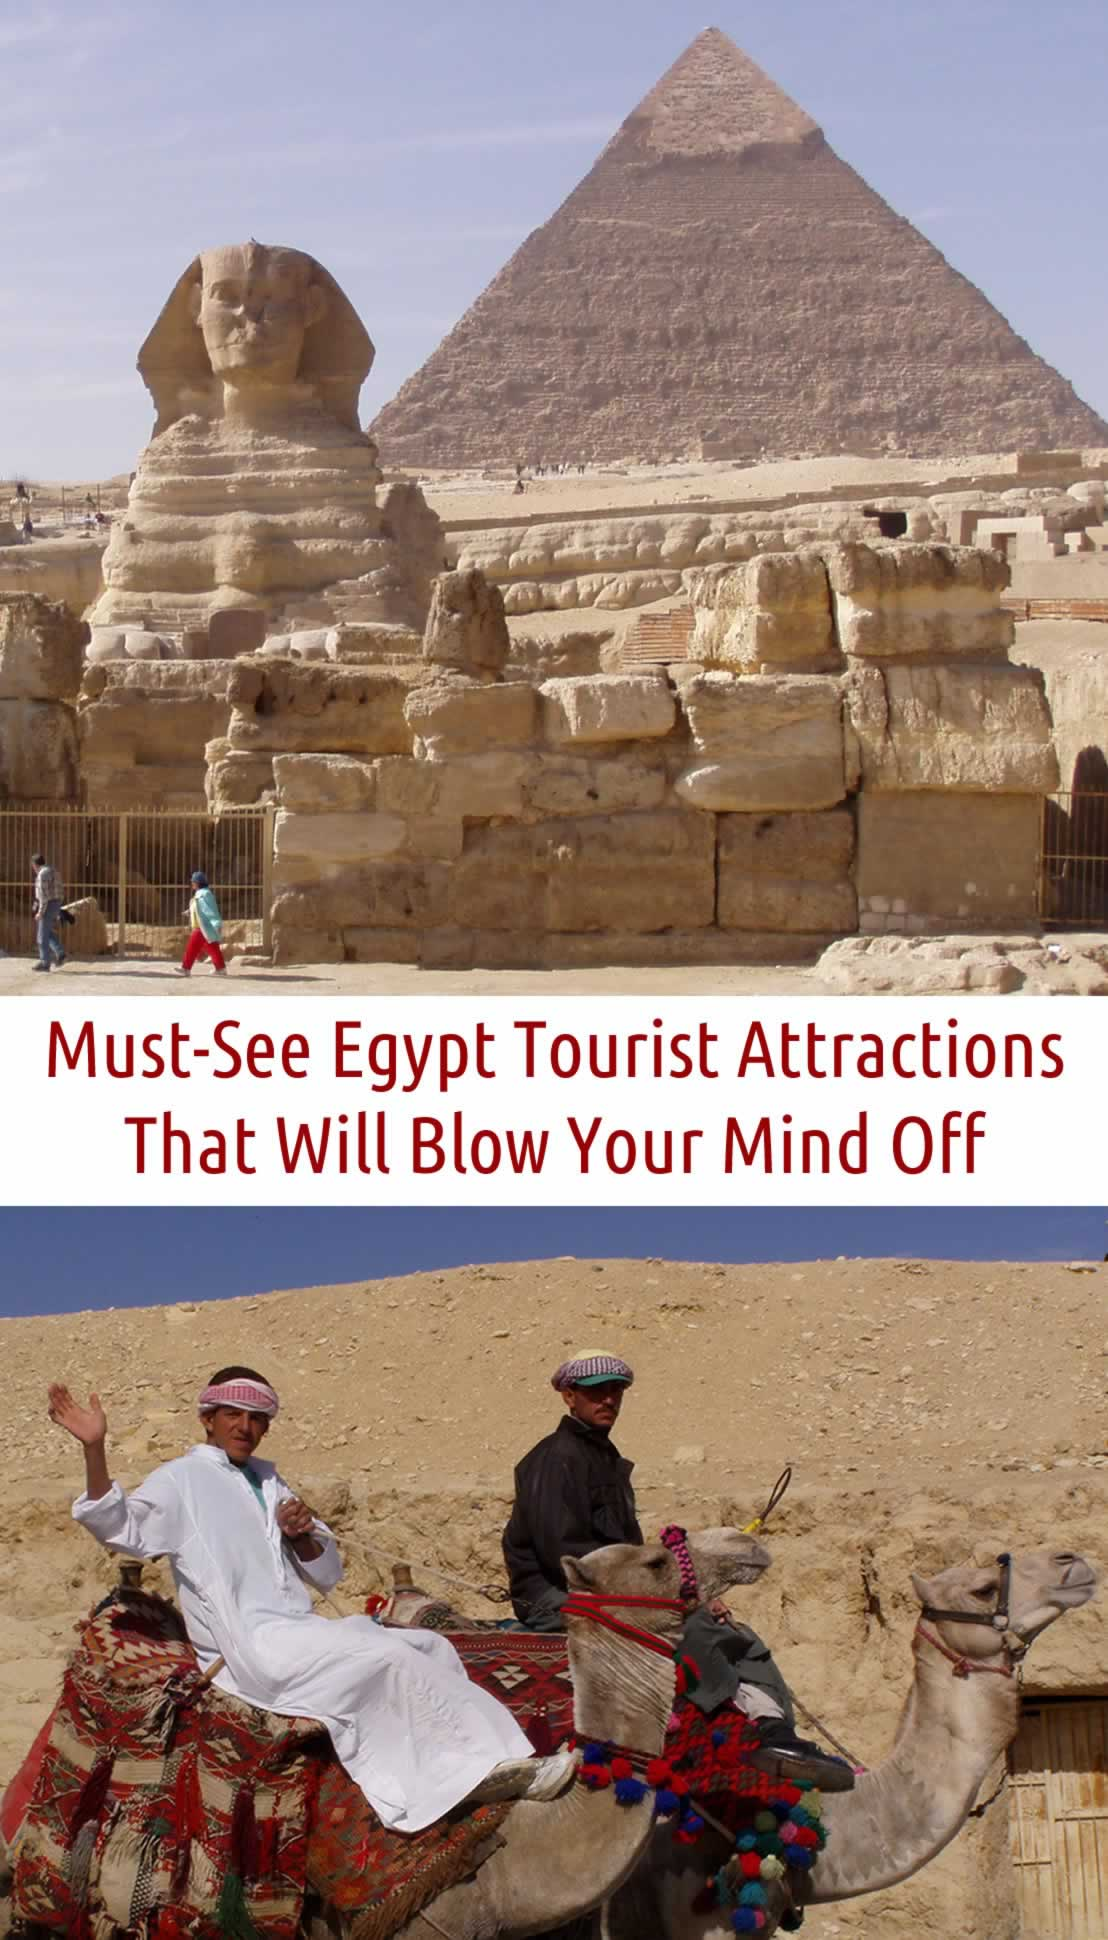 egypt tourist attractions, pyramids, the Sphinx, camels